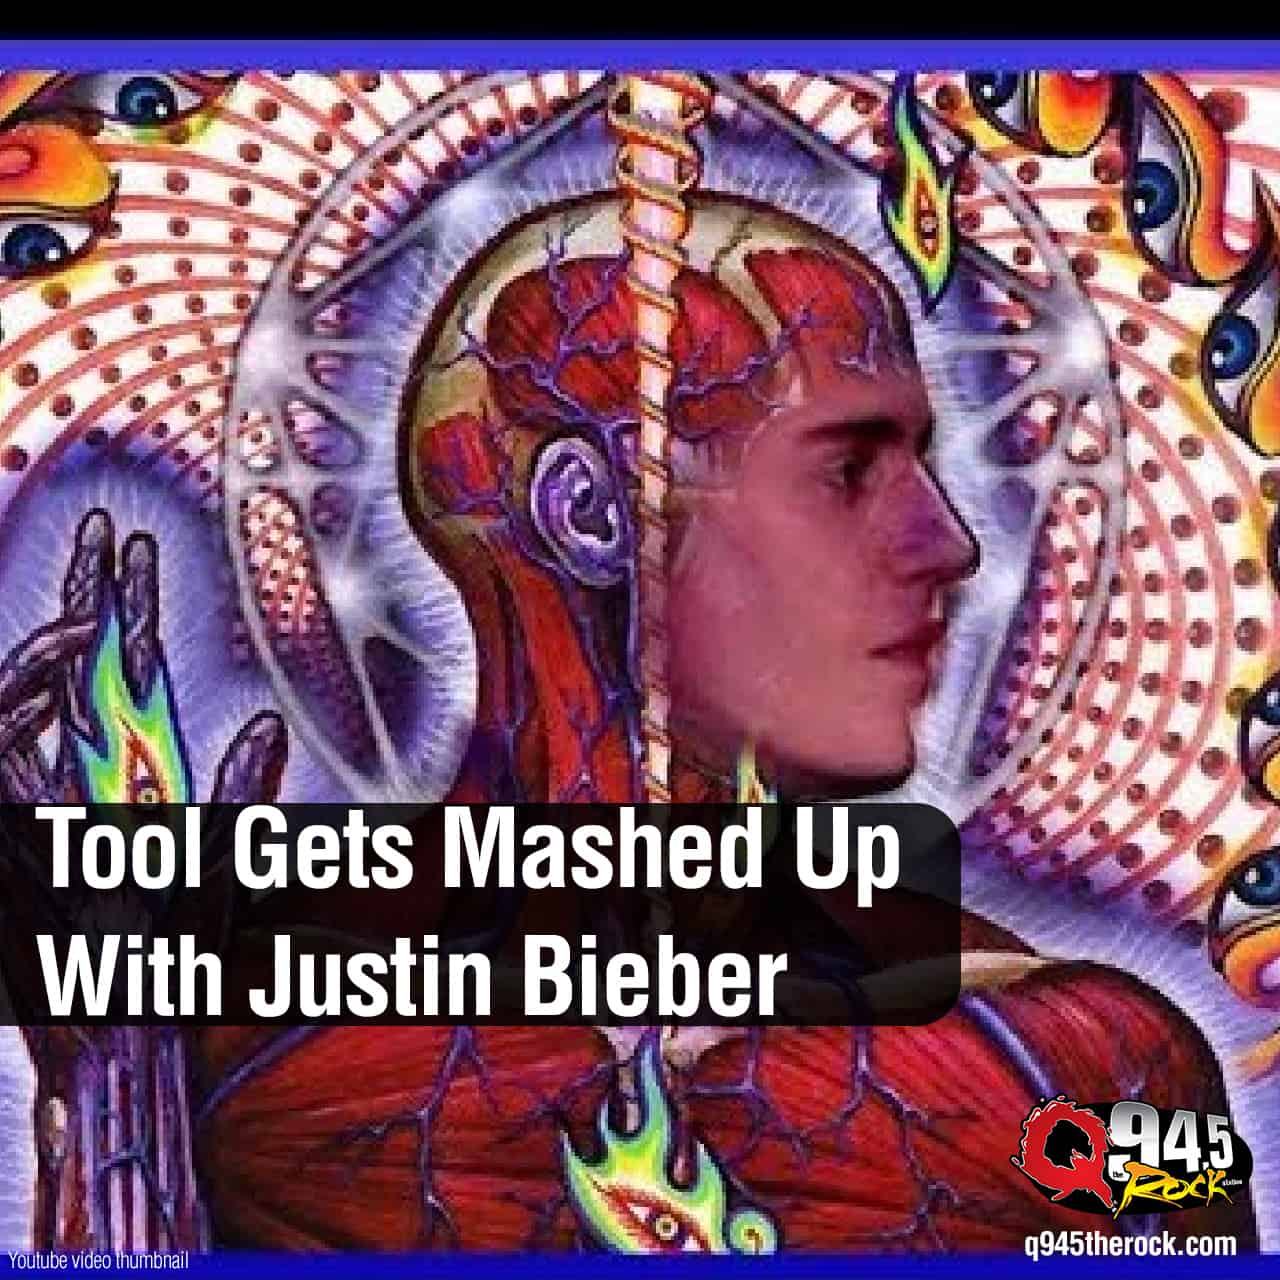 Tool Gets Mashed Up With Justin Bieber